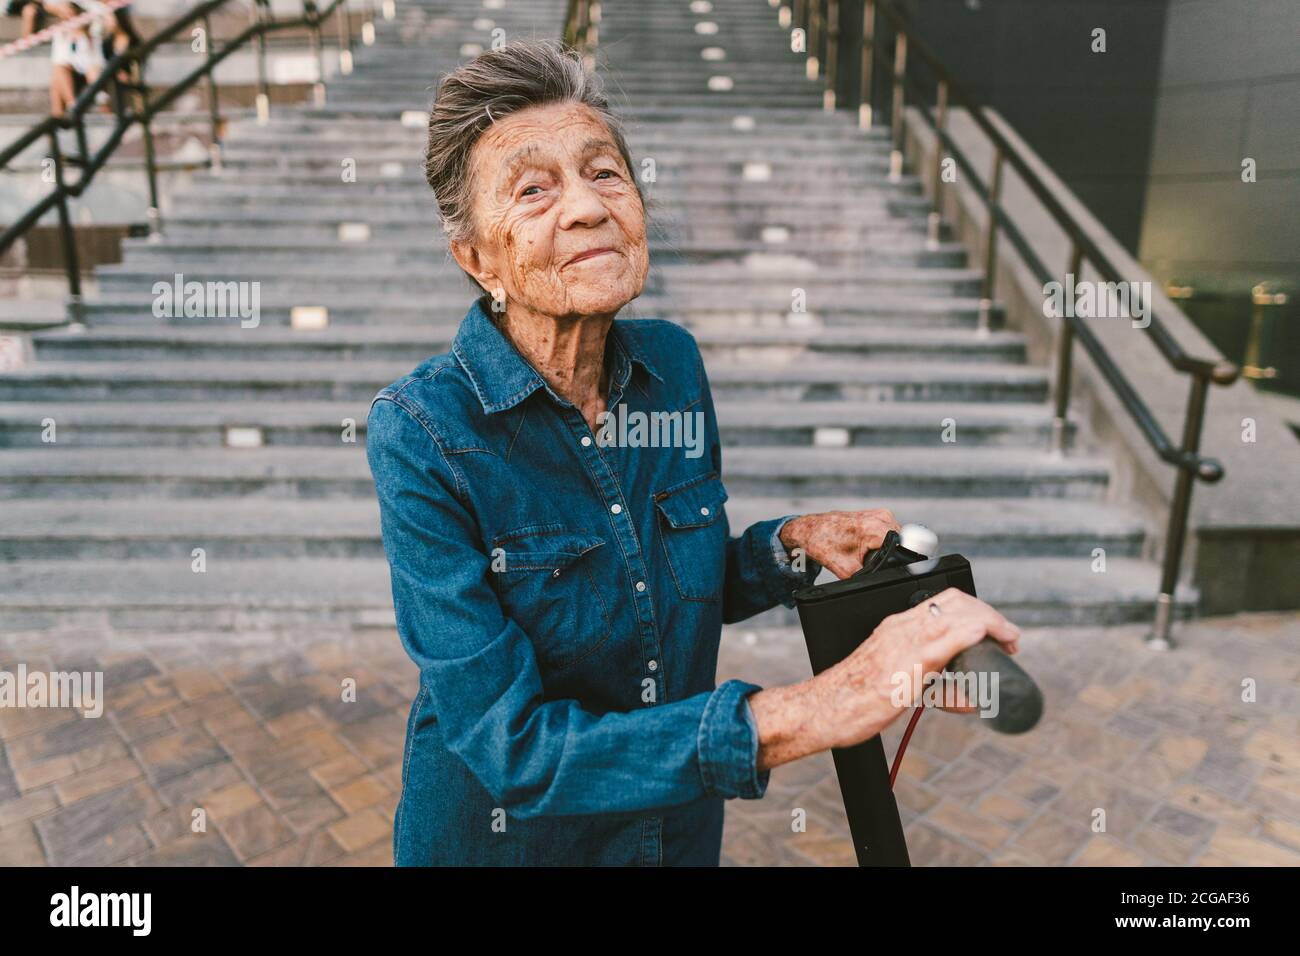 90 year old woman with gray hair, wrinkles, progressive and active uses modern electric transport scooter. Lady pensioner use eco friendly city Stock Photo